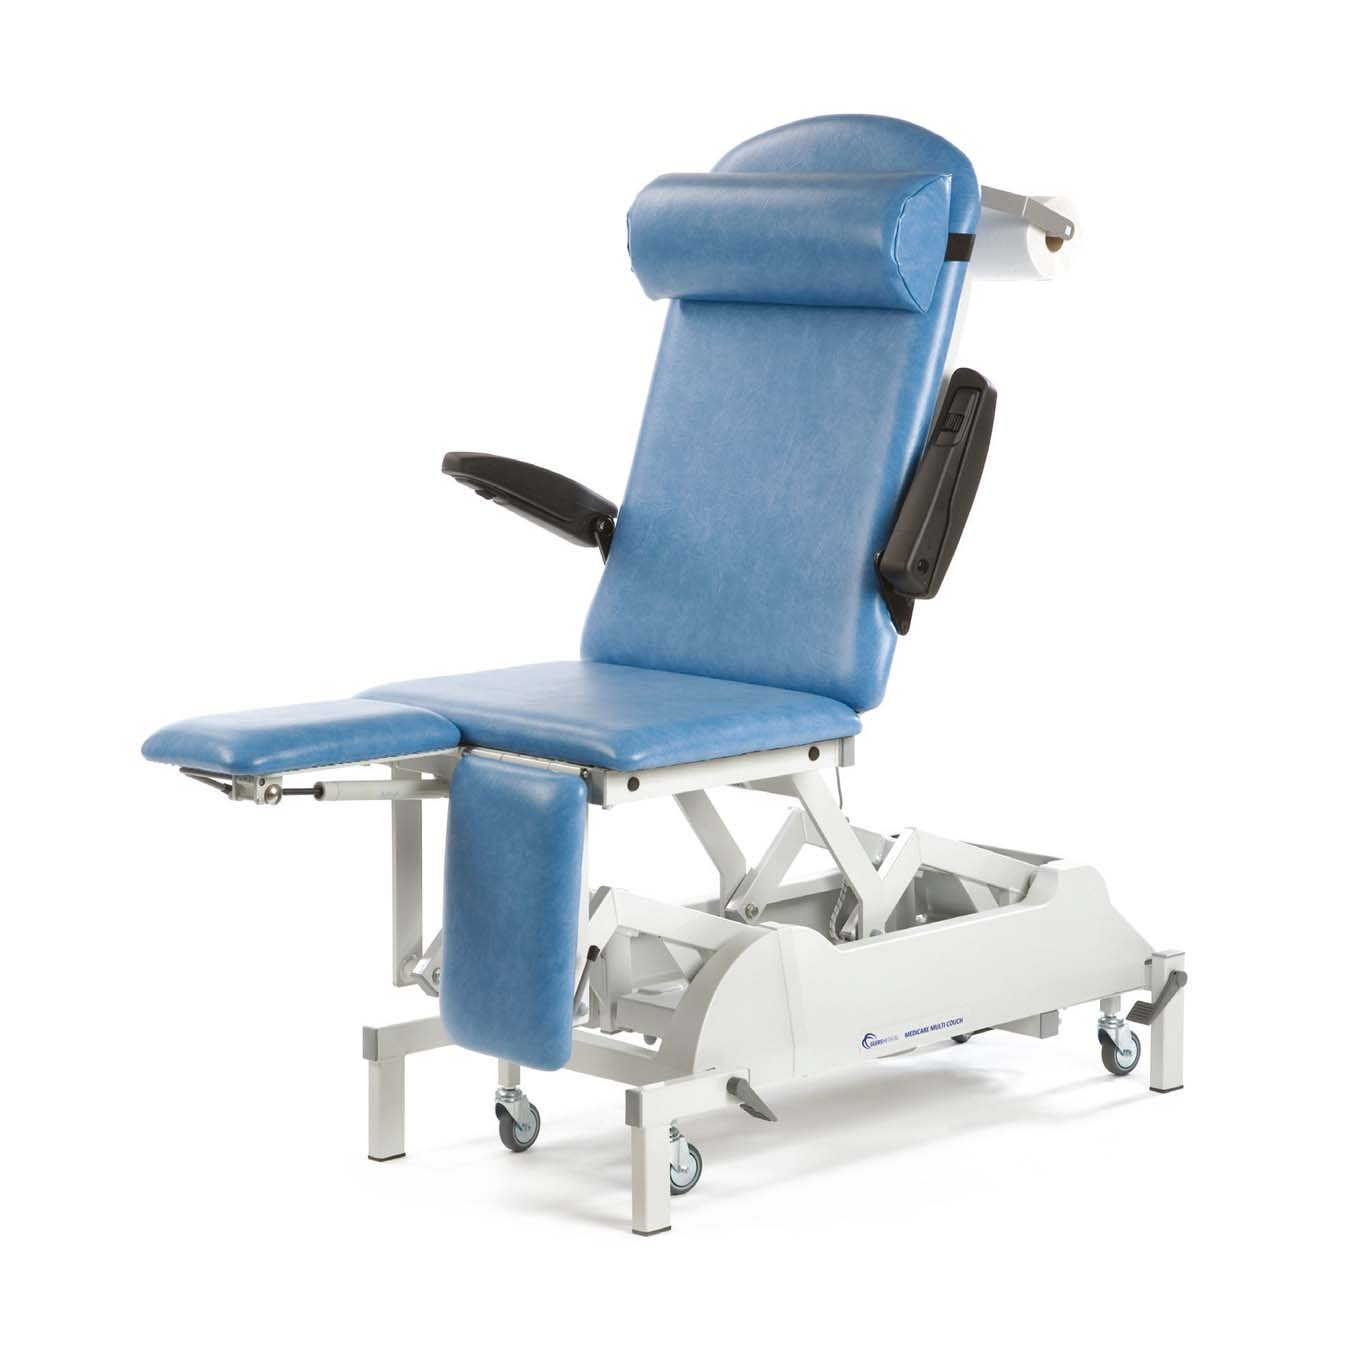 SM0575_1_Seers-Medicare-Multi-Couch-Dual-Footrest_1